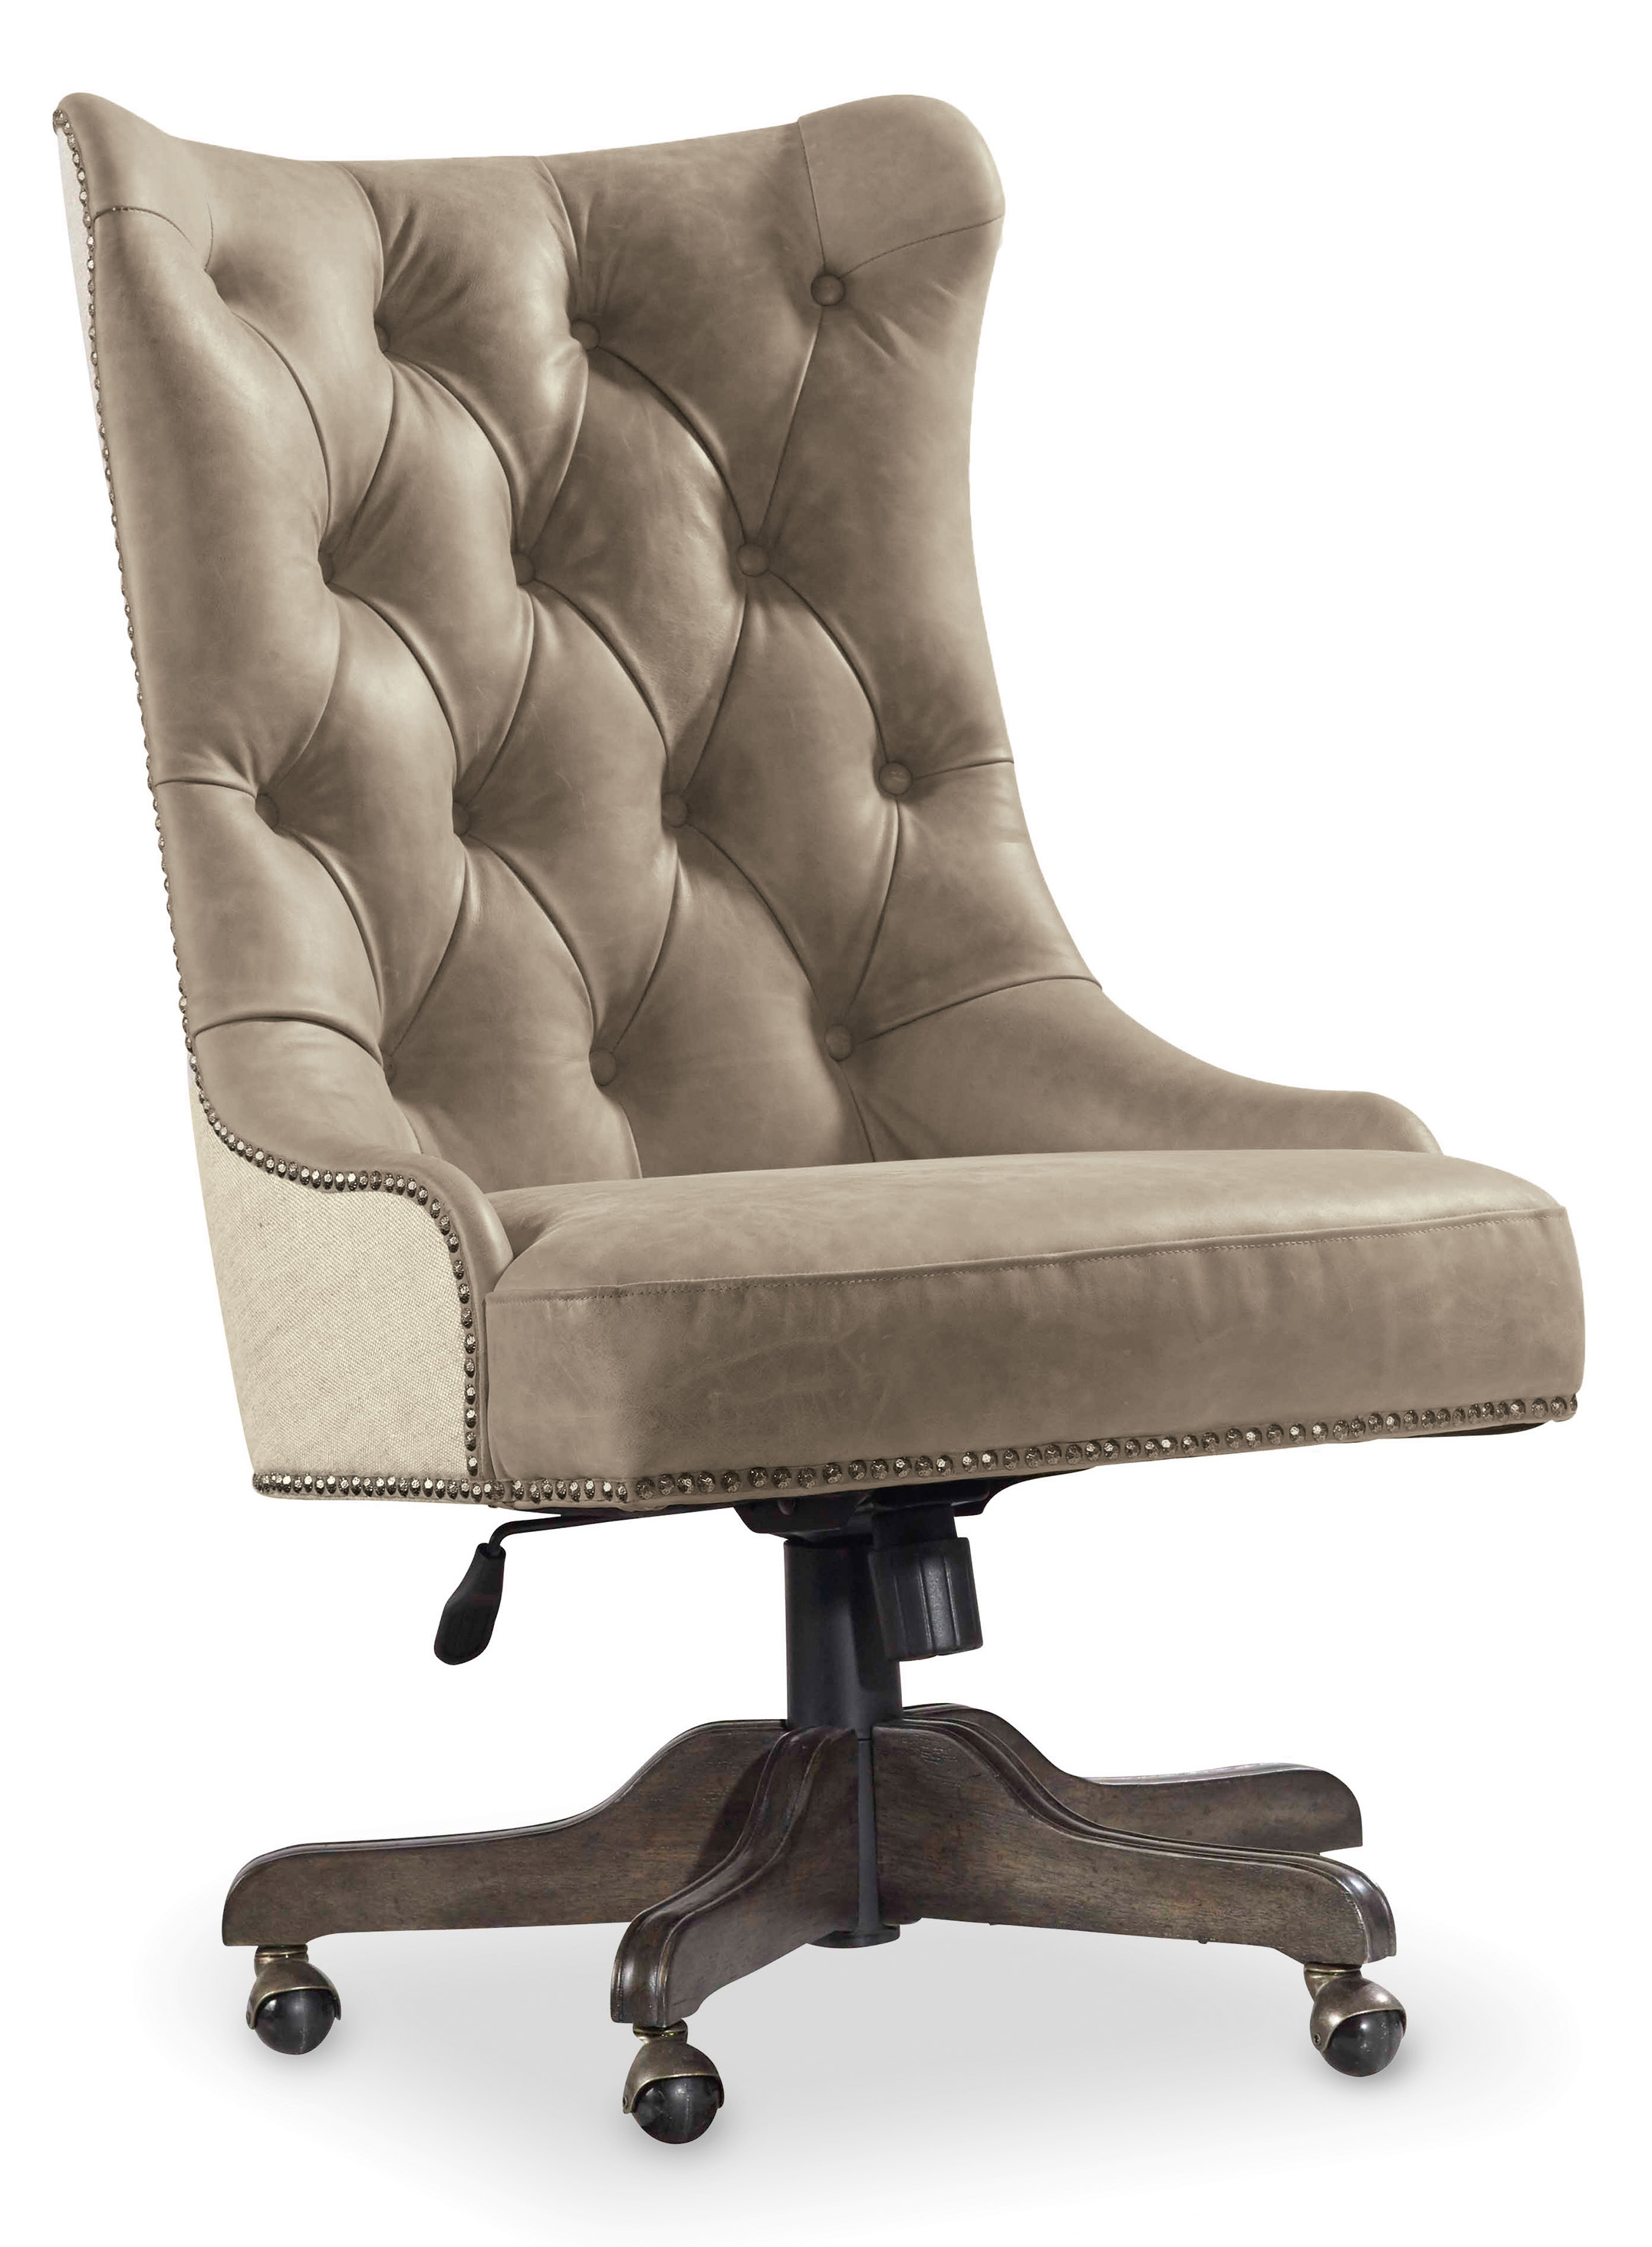 Hooker Furniture Vintage West Executive Desk Chair with